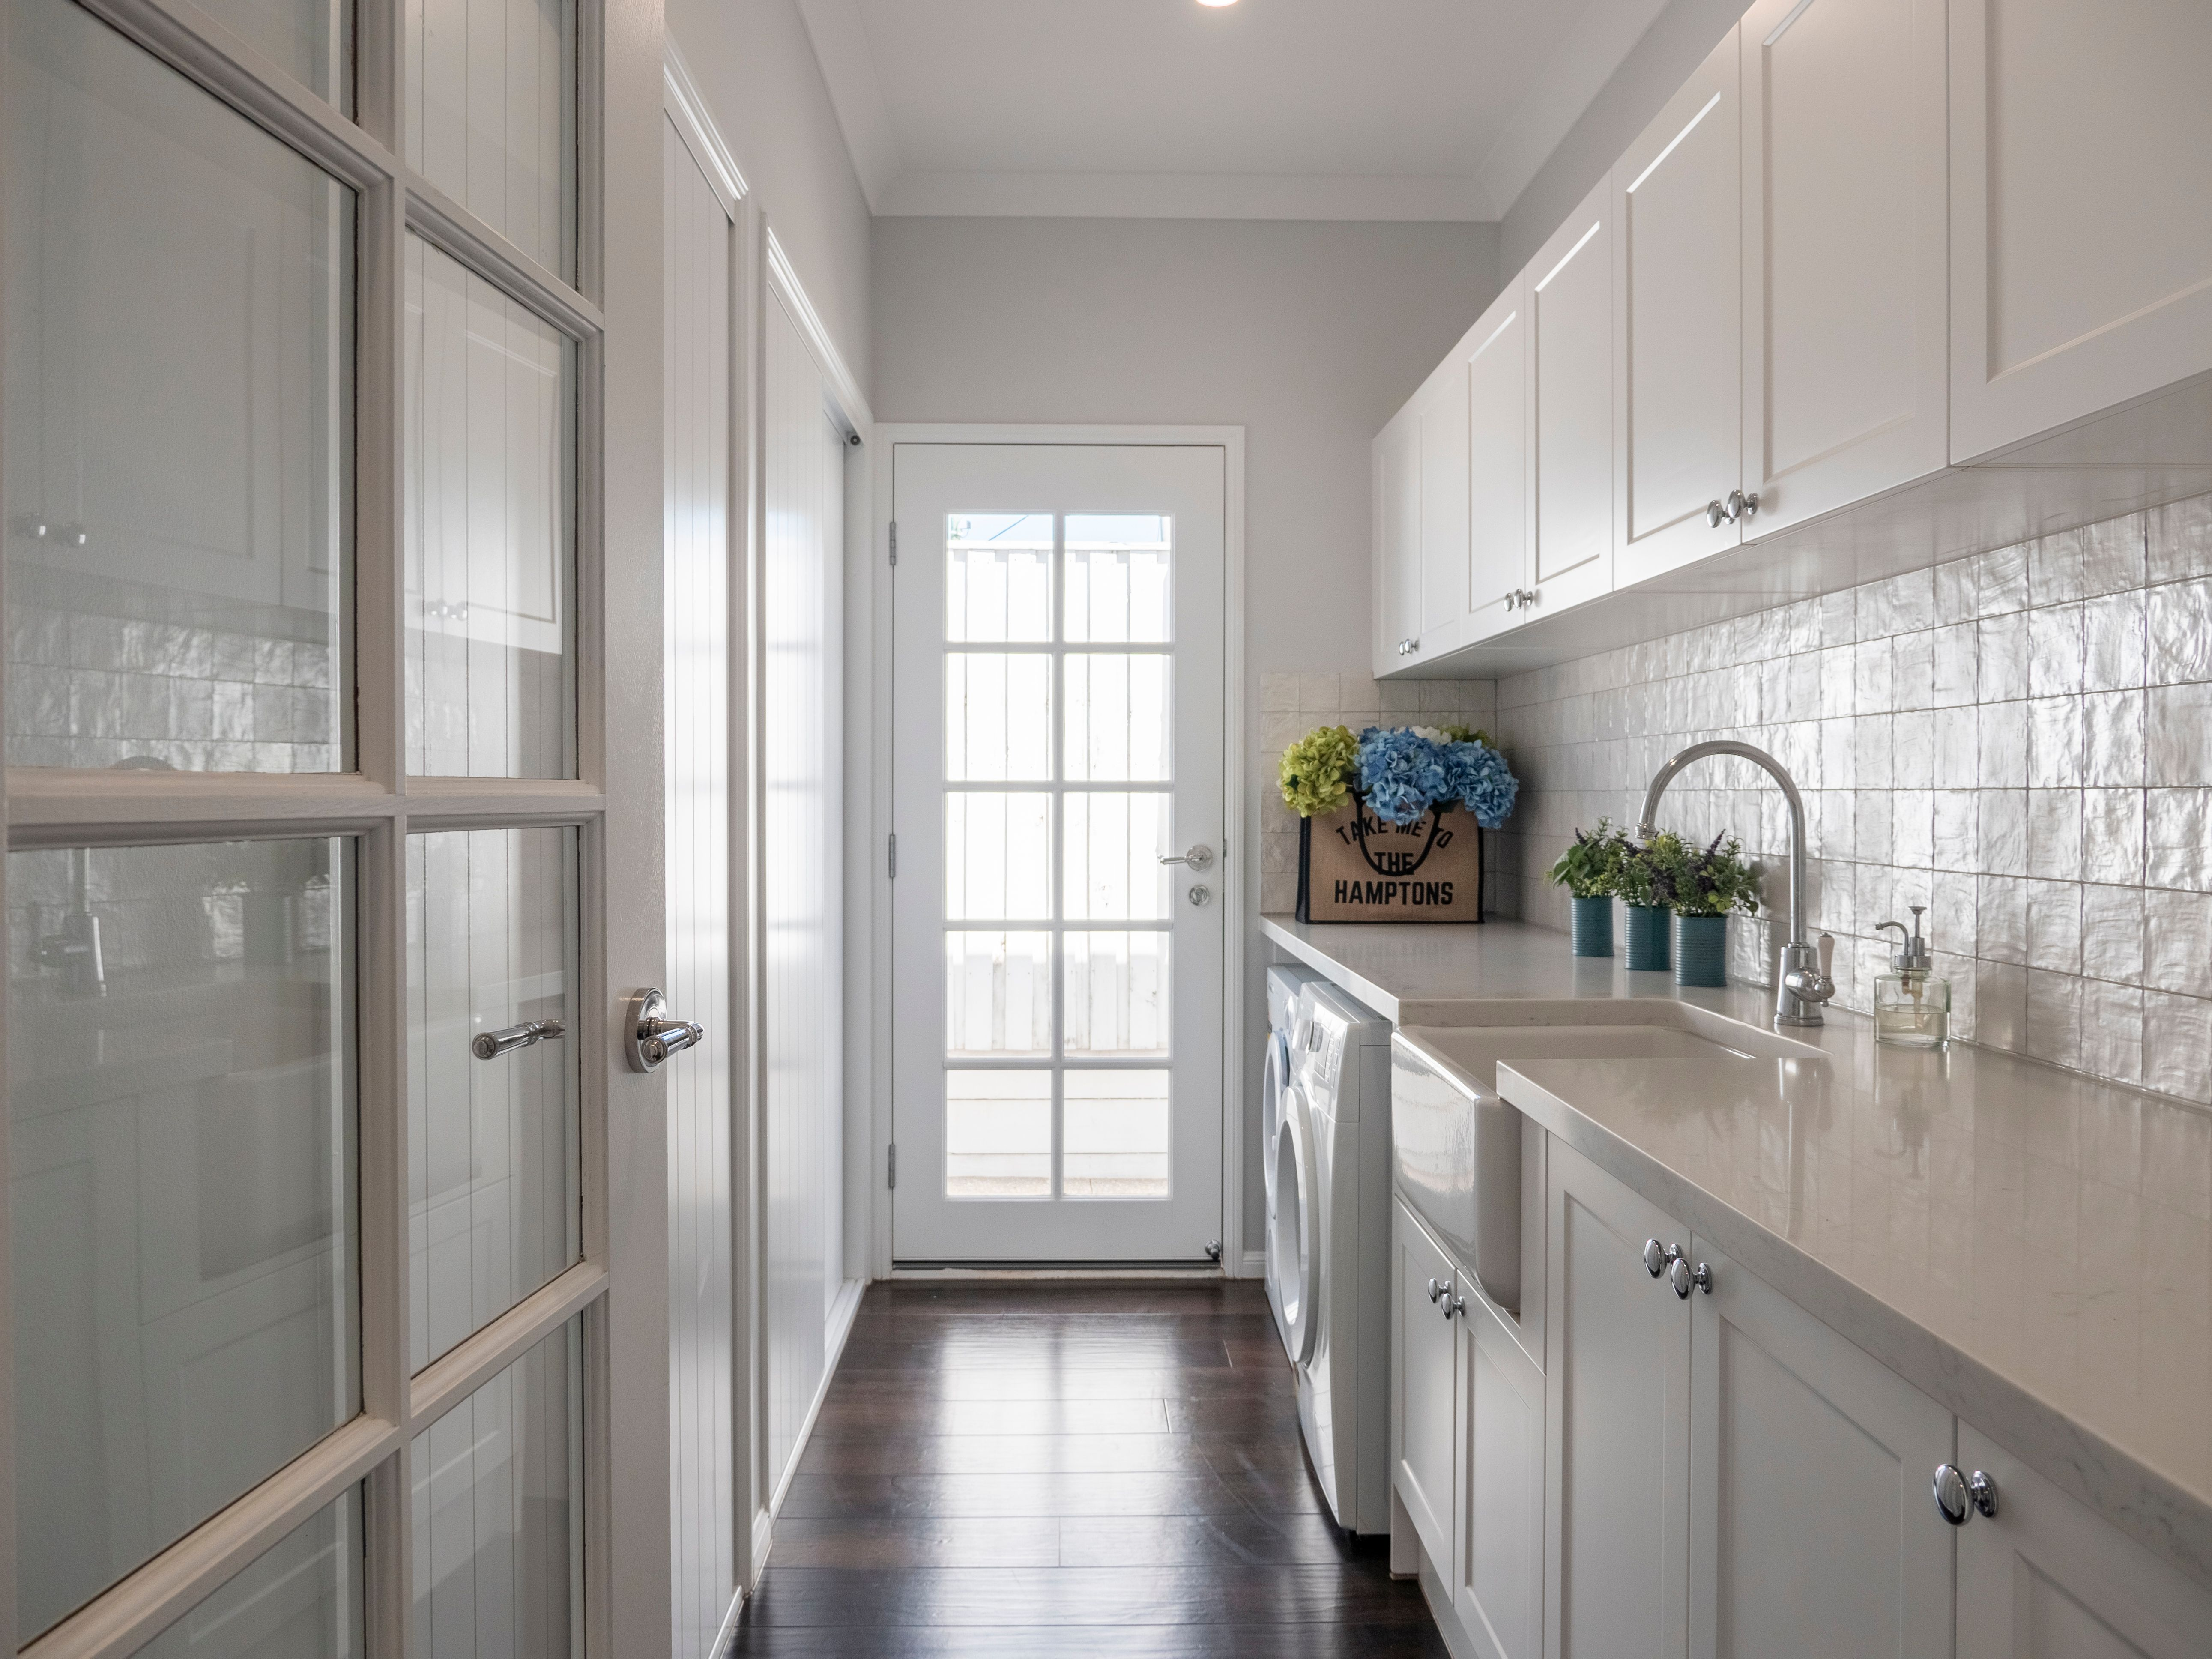 Hamptons style with Hume doors